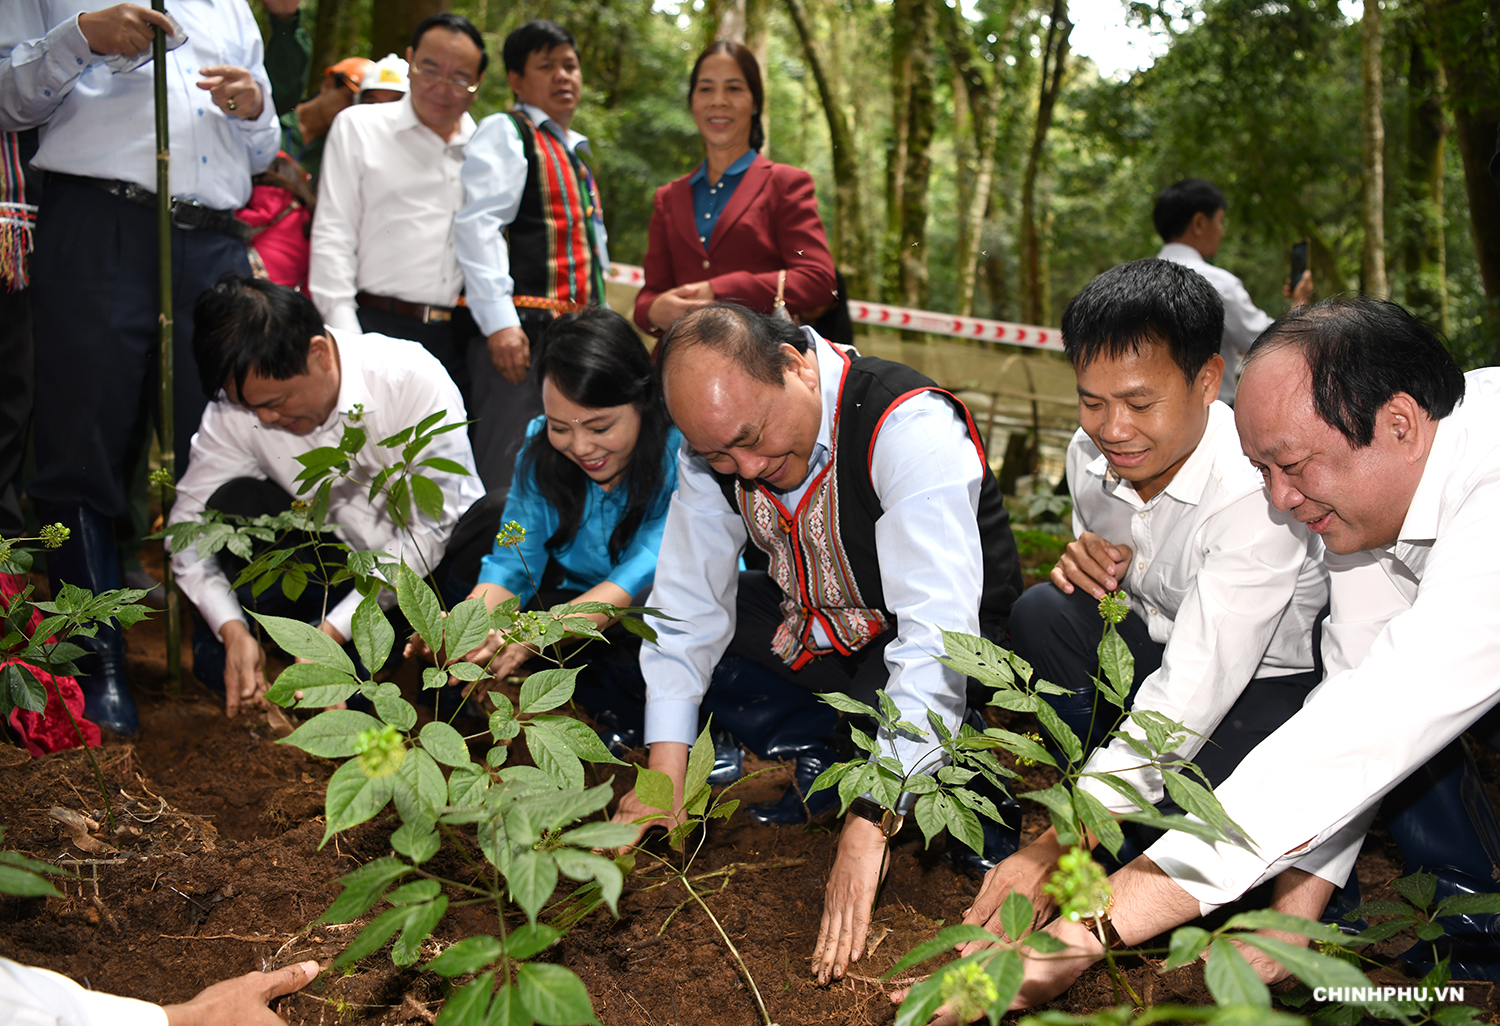 PM Phuc plants ginseng trees at the center. Photo: chinhphu.vn